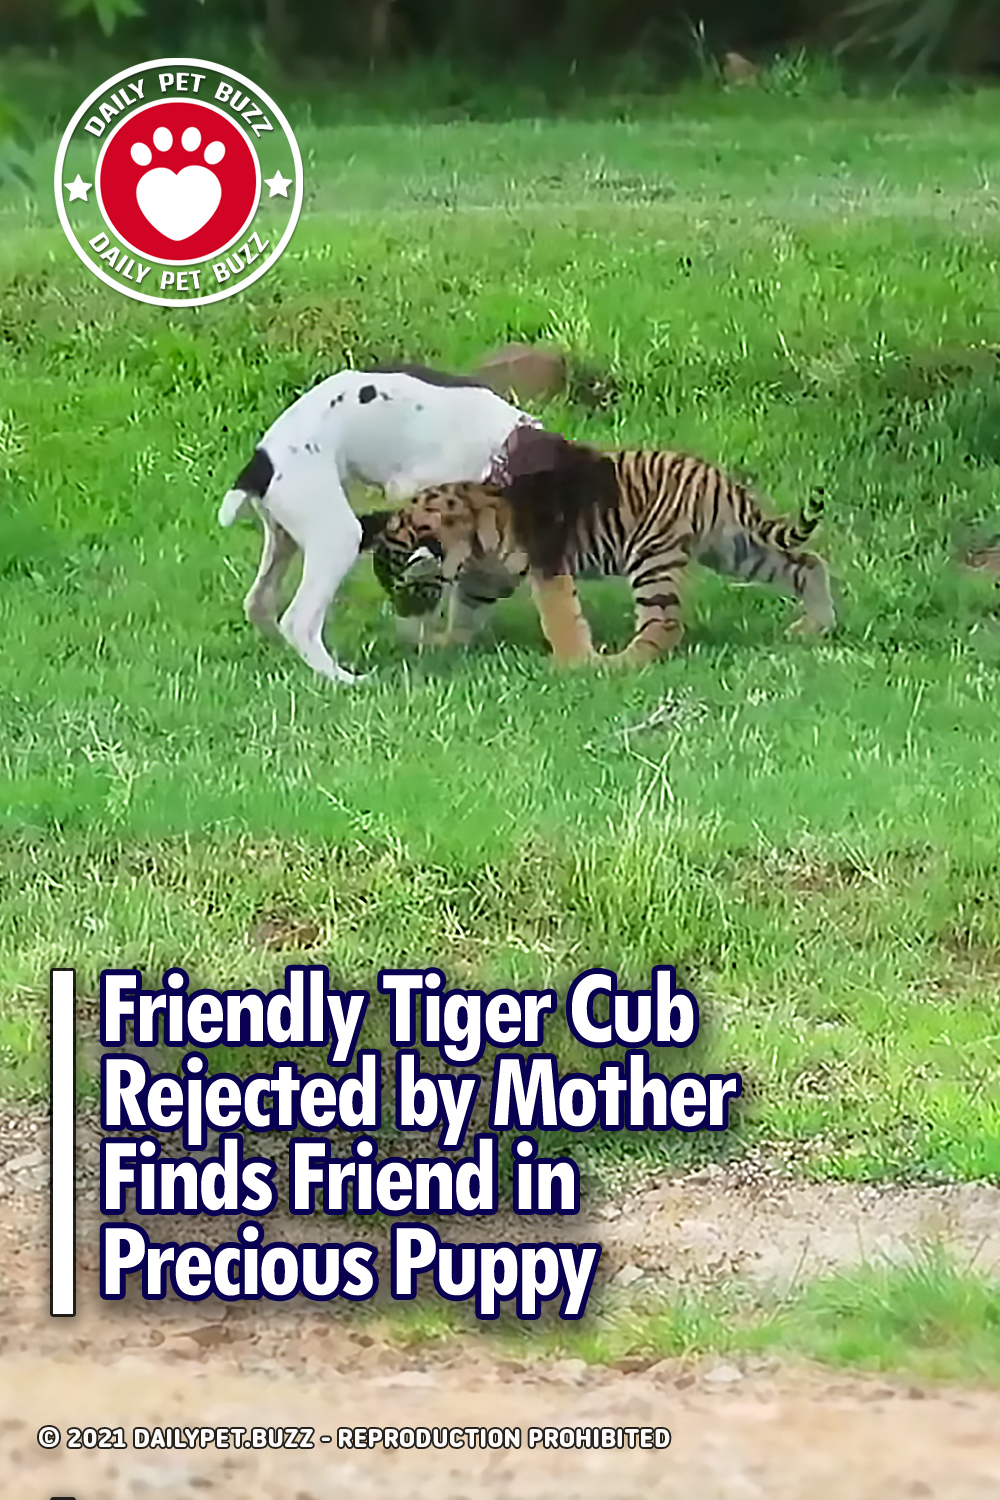 Friendly Tiger Cub Rejected by Mother Finds Friend in Precious Puppy